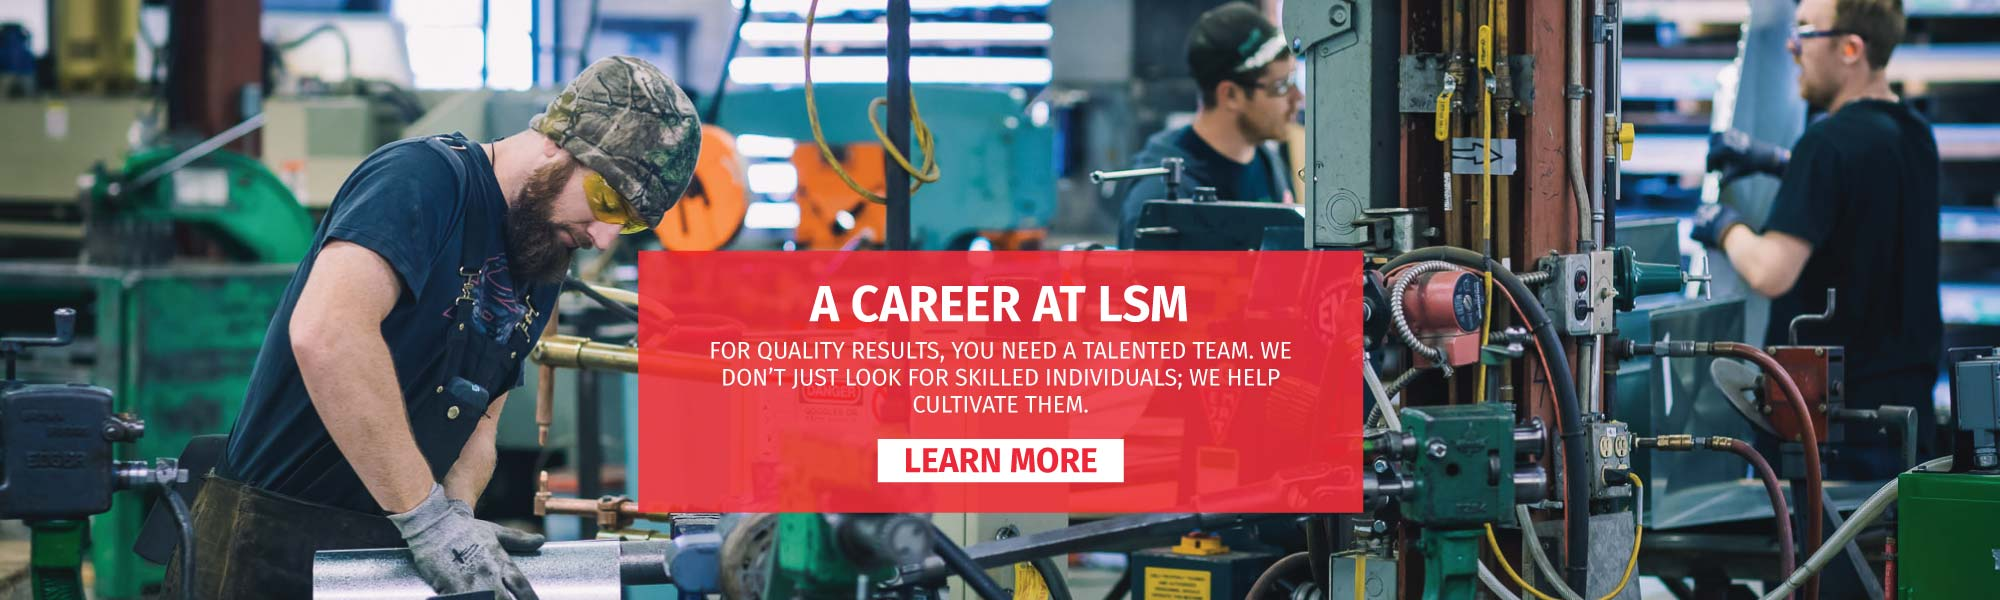 Work at LSM